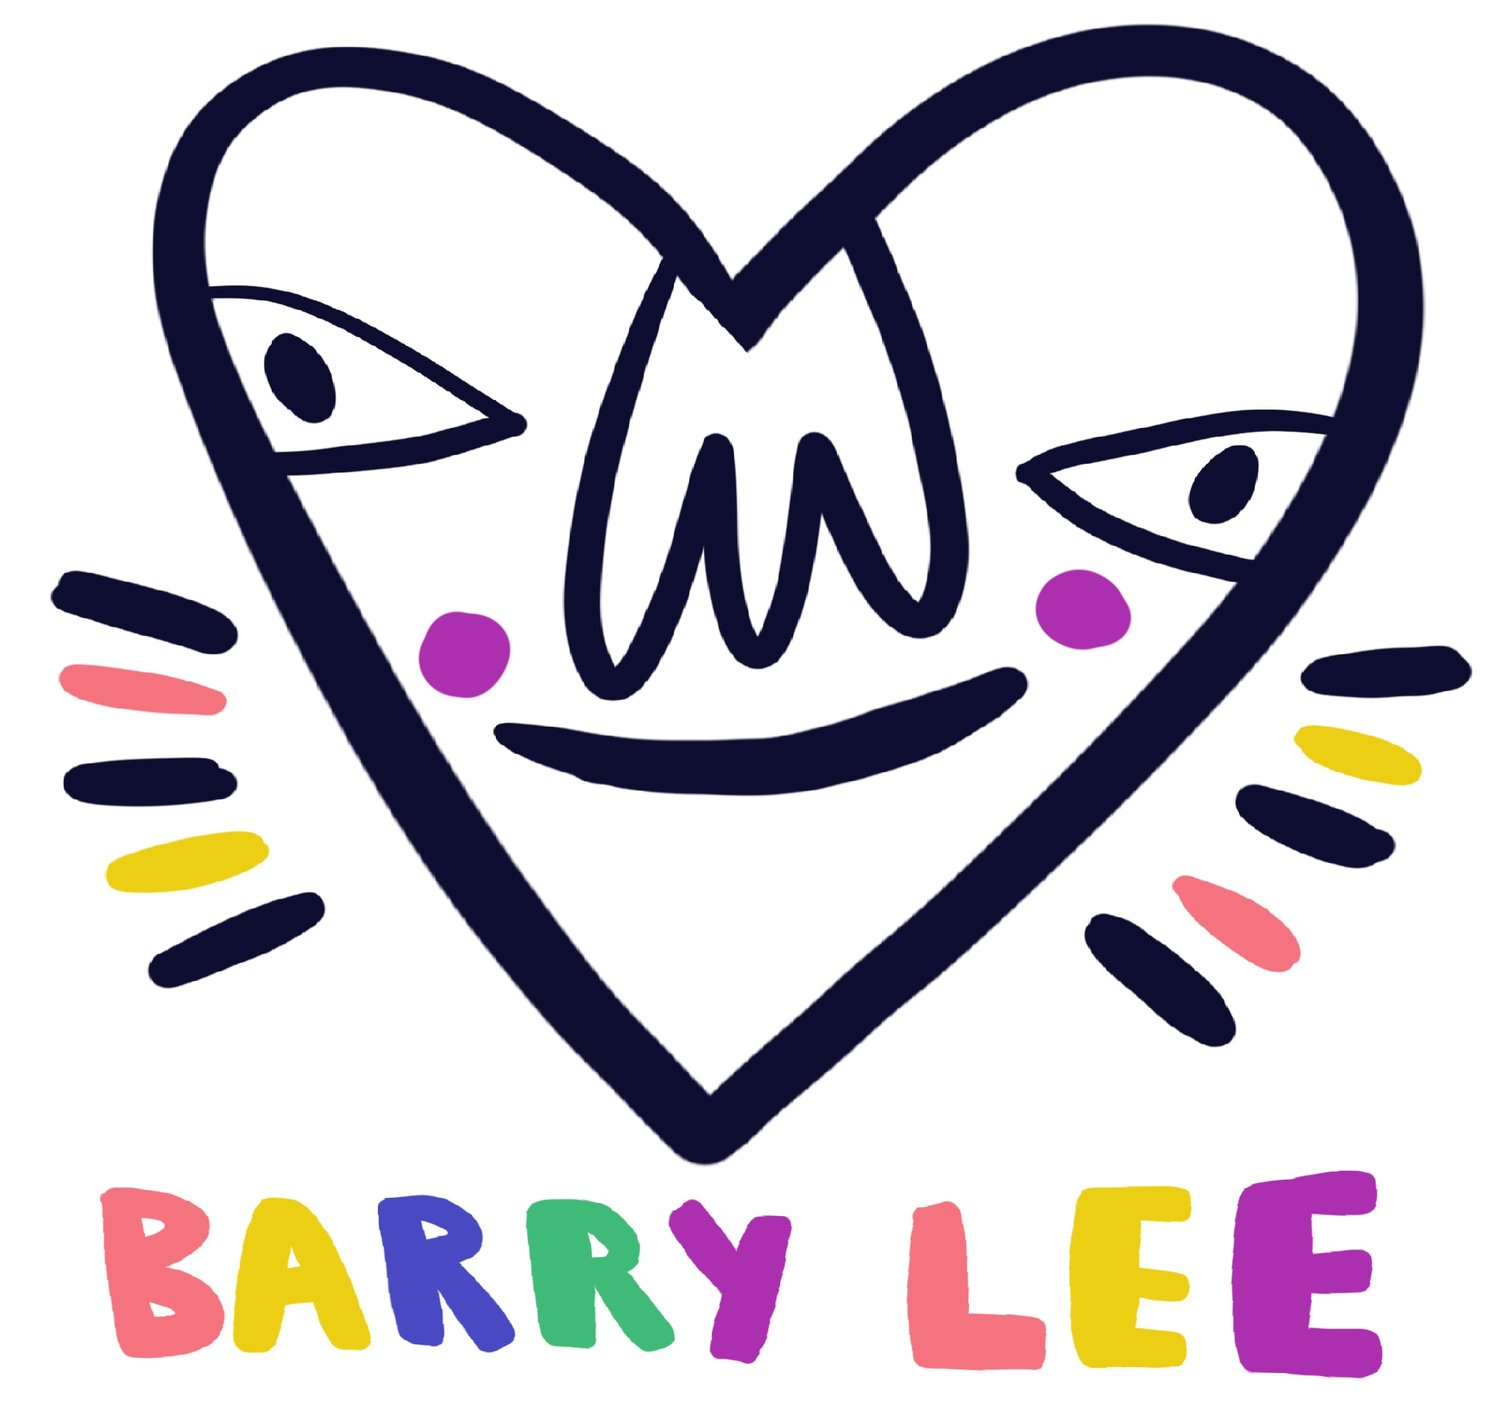 Barry Lee